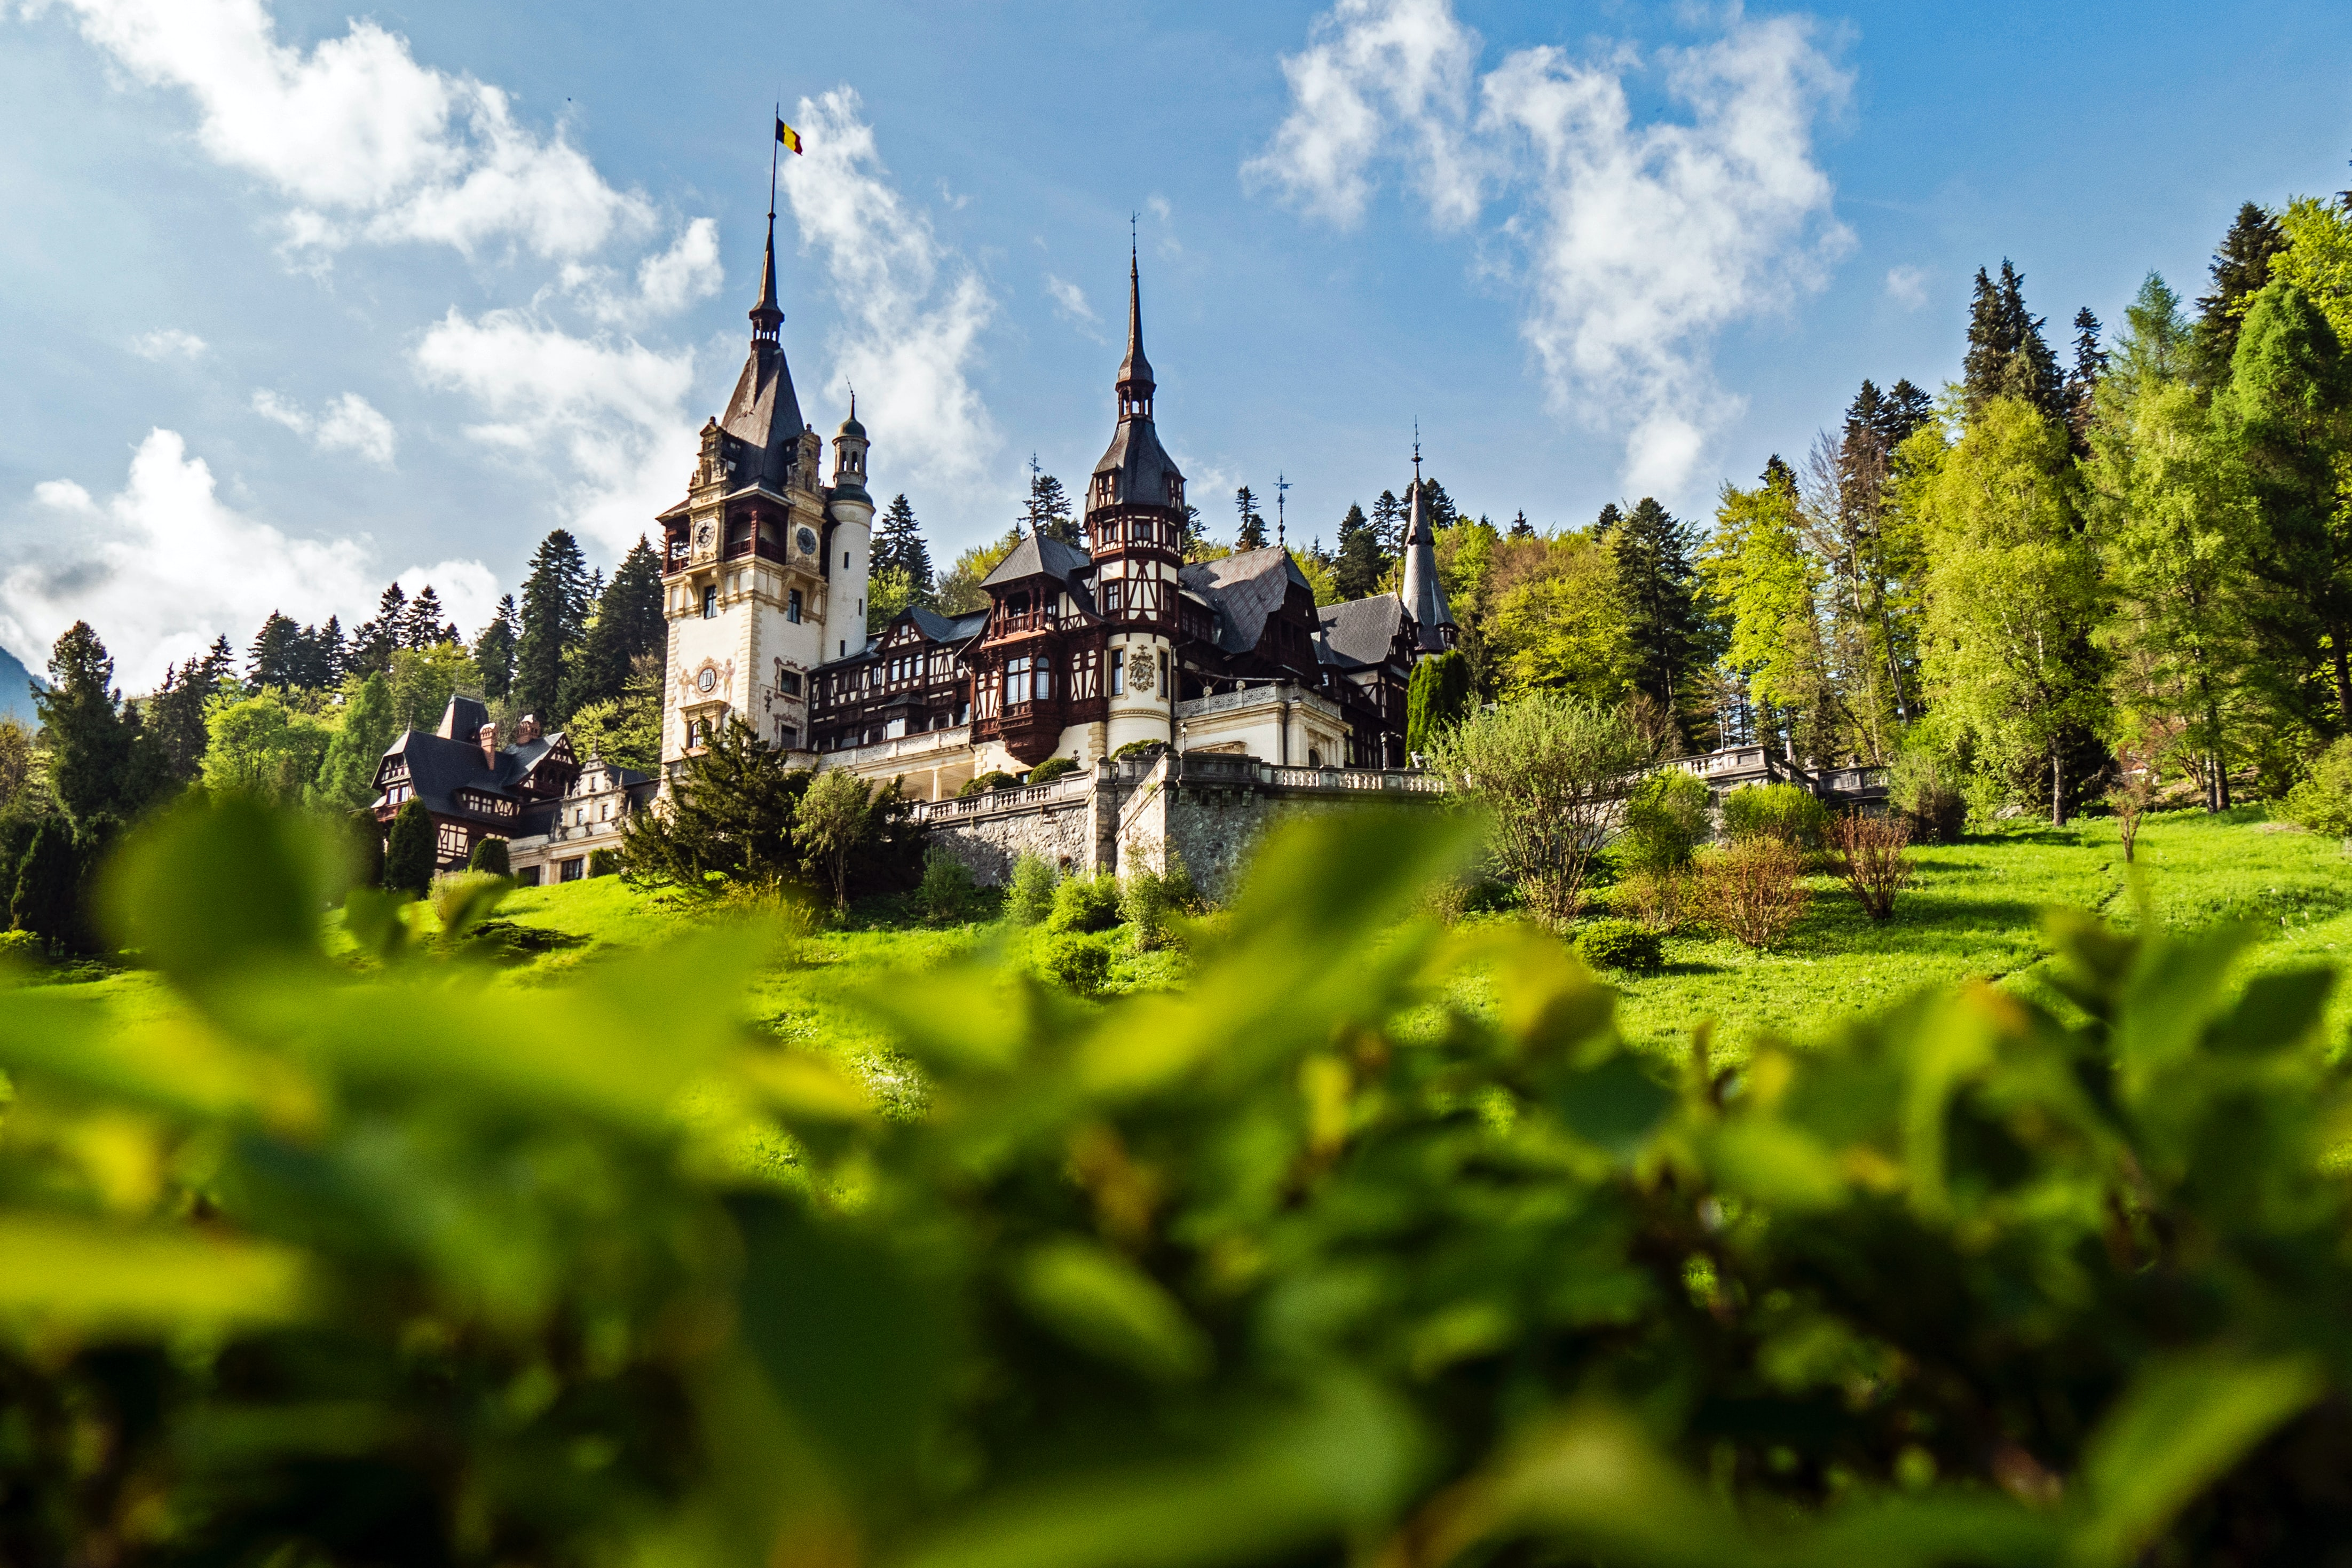 bran castle medieval dracula romania transylvania gotthard pass switzerland alps holiday scenic road trip Europe adventure travel localbini biniblog